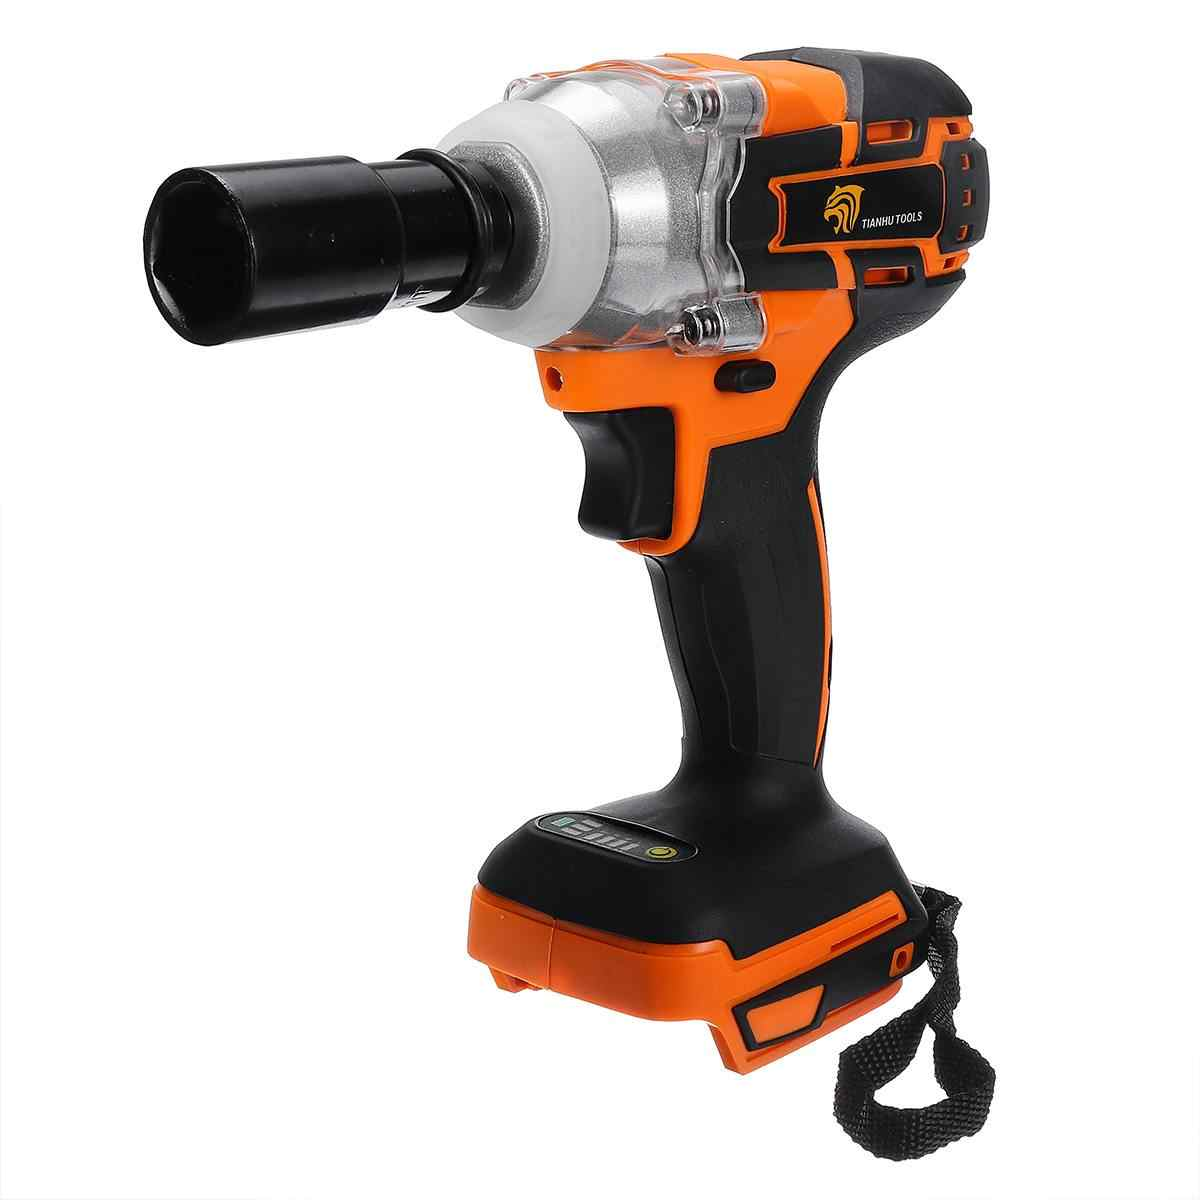 18V 520Nm 1/2 High Torque Cordless Brushless Impact Wrench Drill Tool ElectricAdapted to 18V Makita Battery